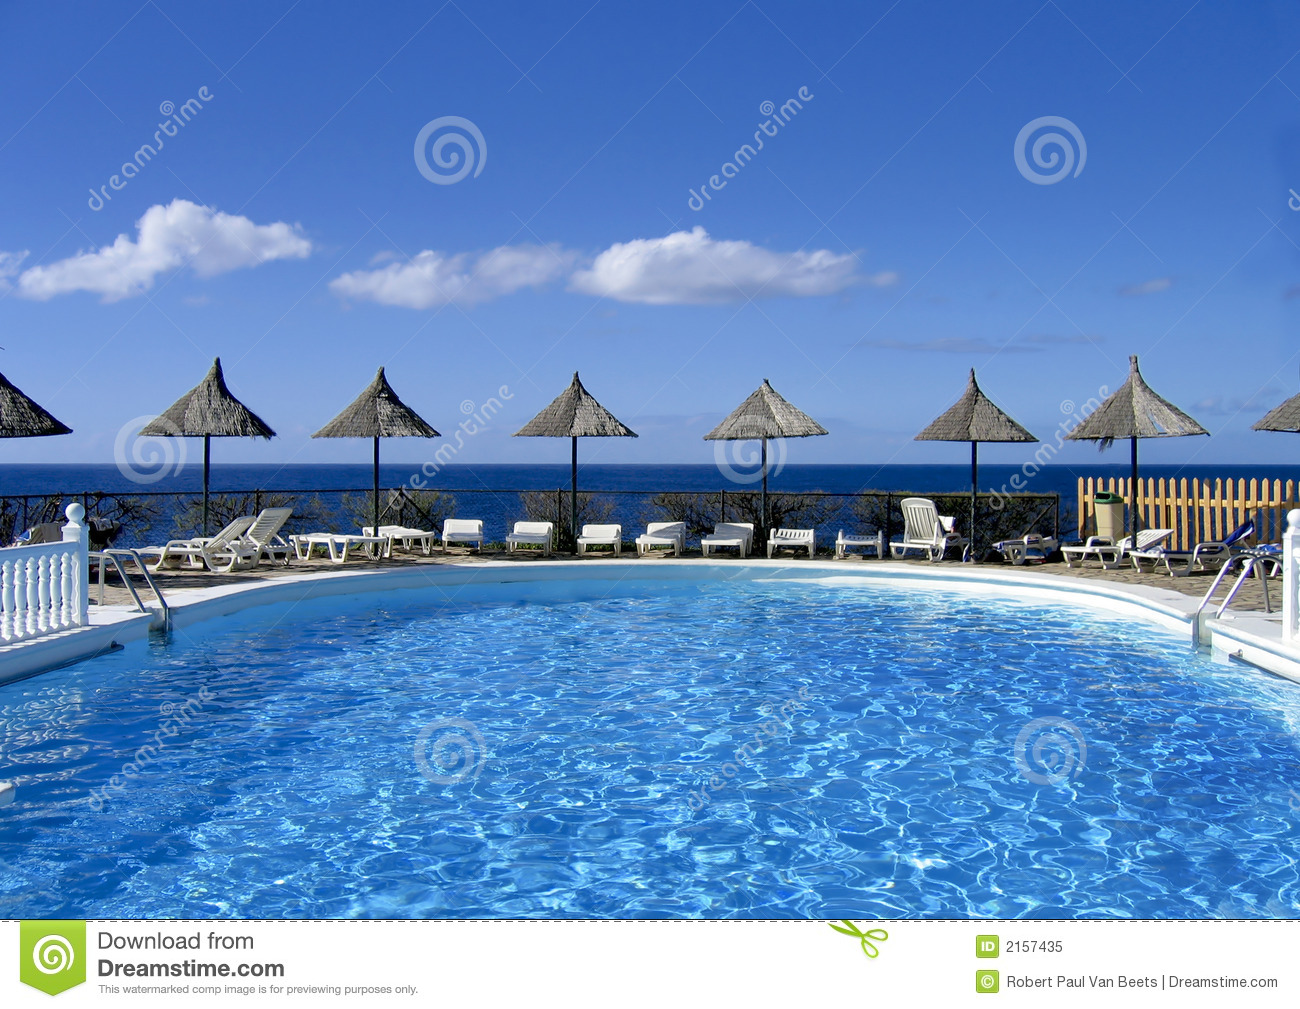 Swimming Pool With Sun Shades Stock Image - Image of shade ...